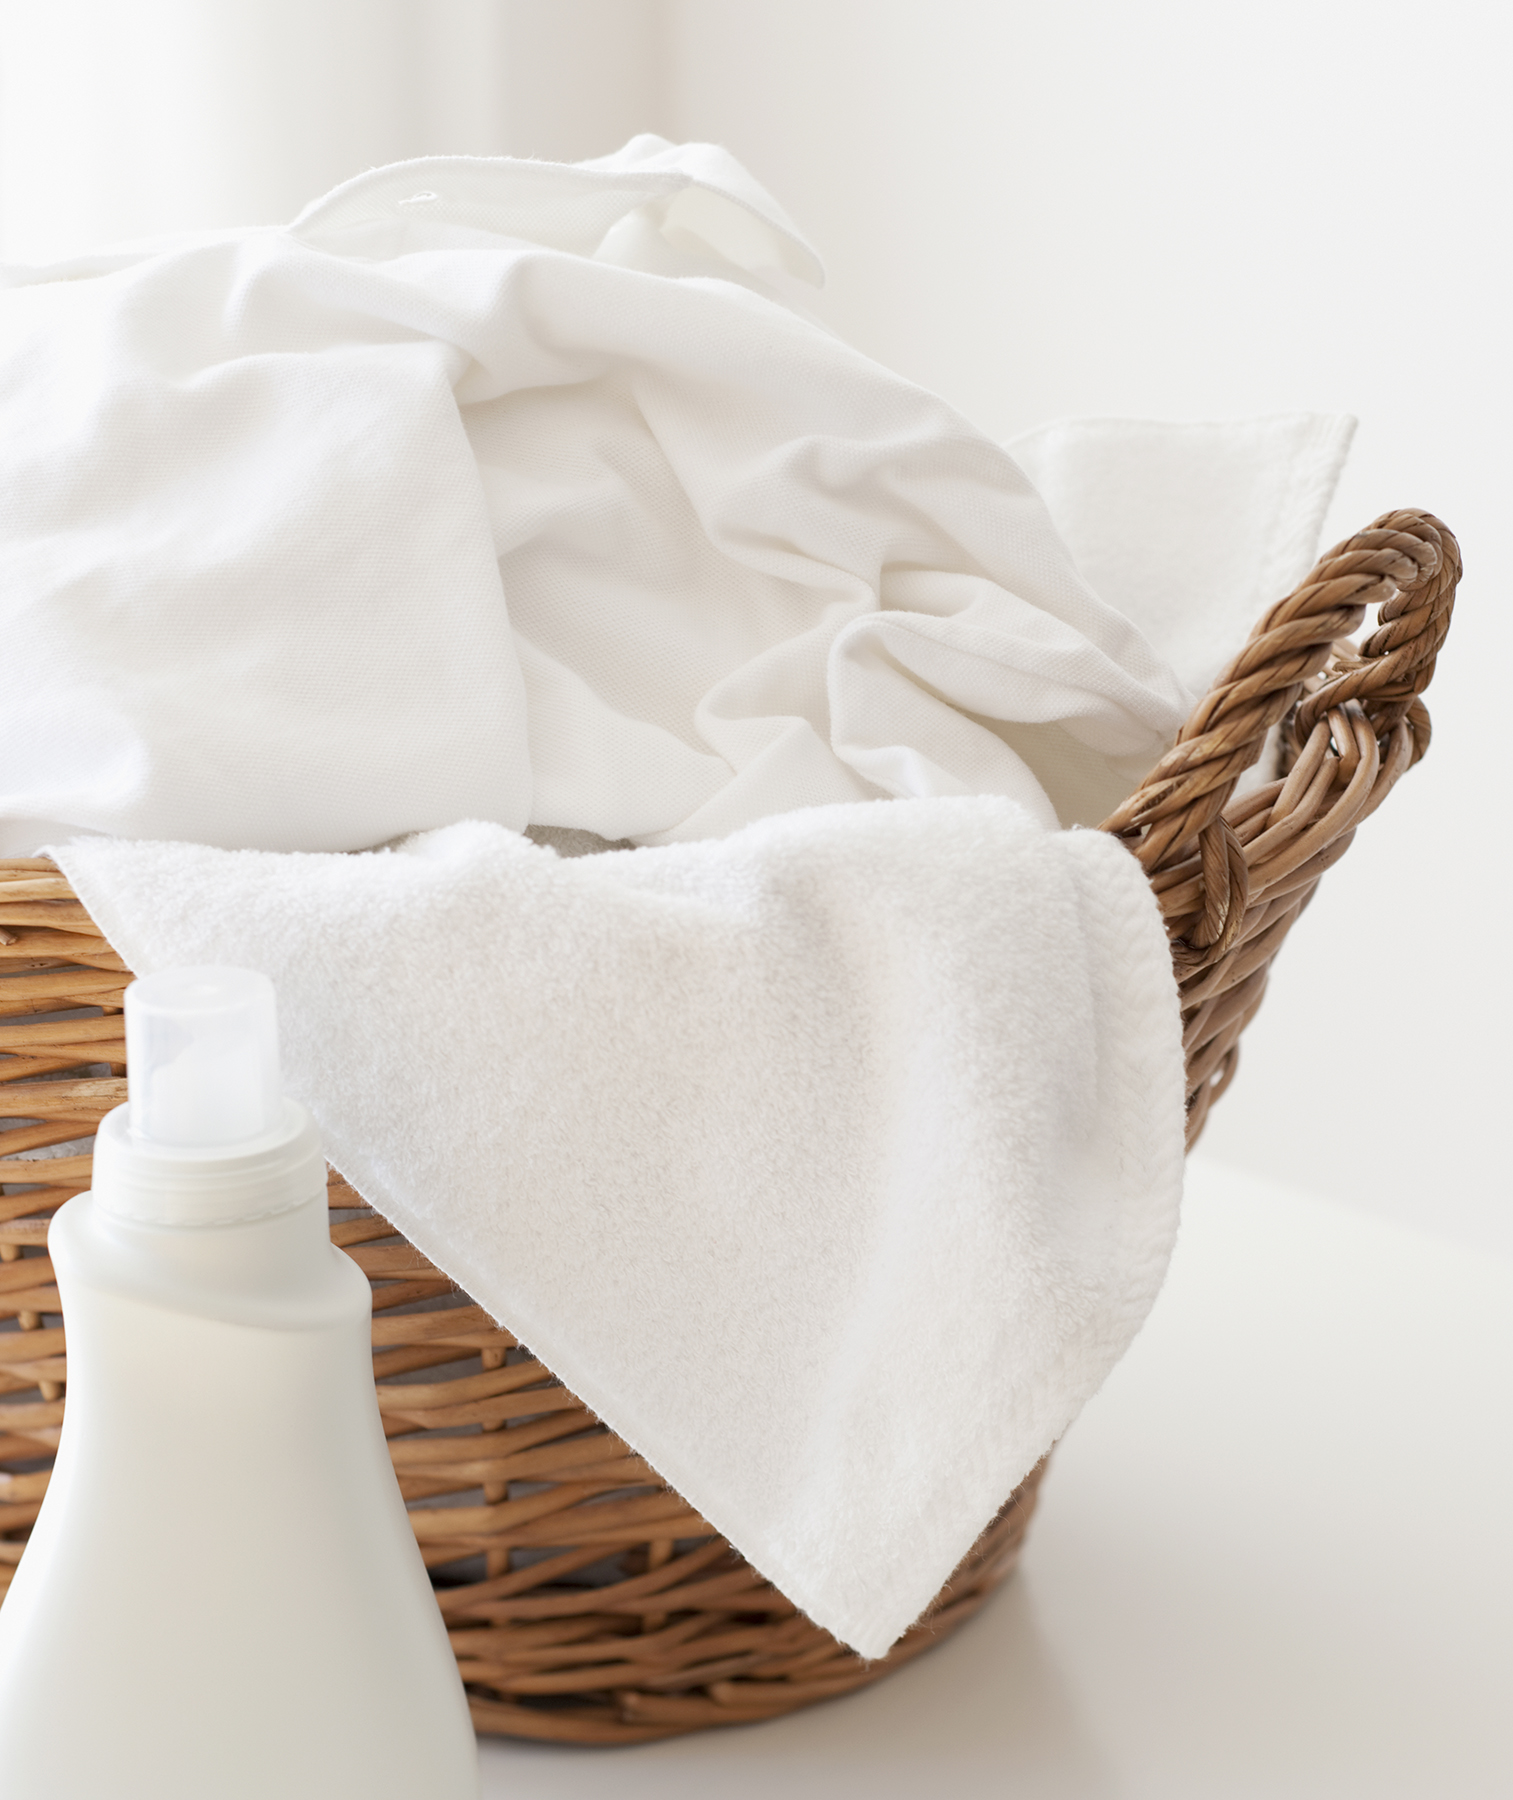 The Major Laundry Mistake You're Making—and It's Ruining Your Clothes